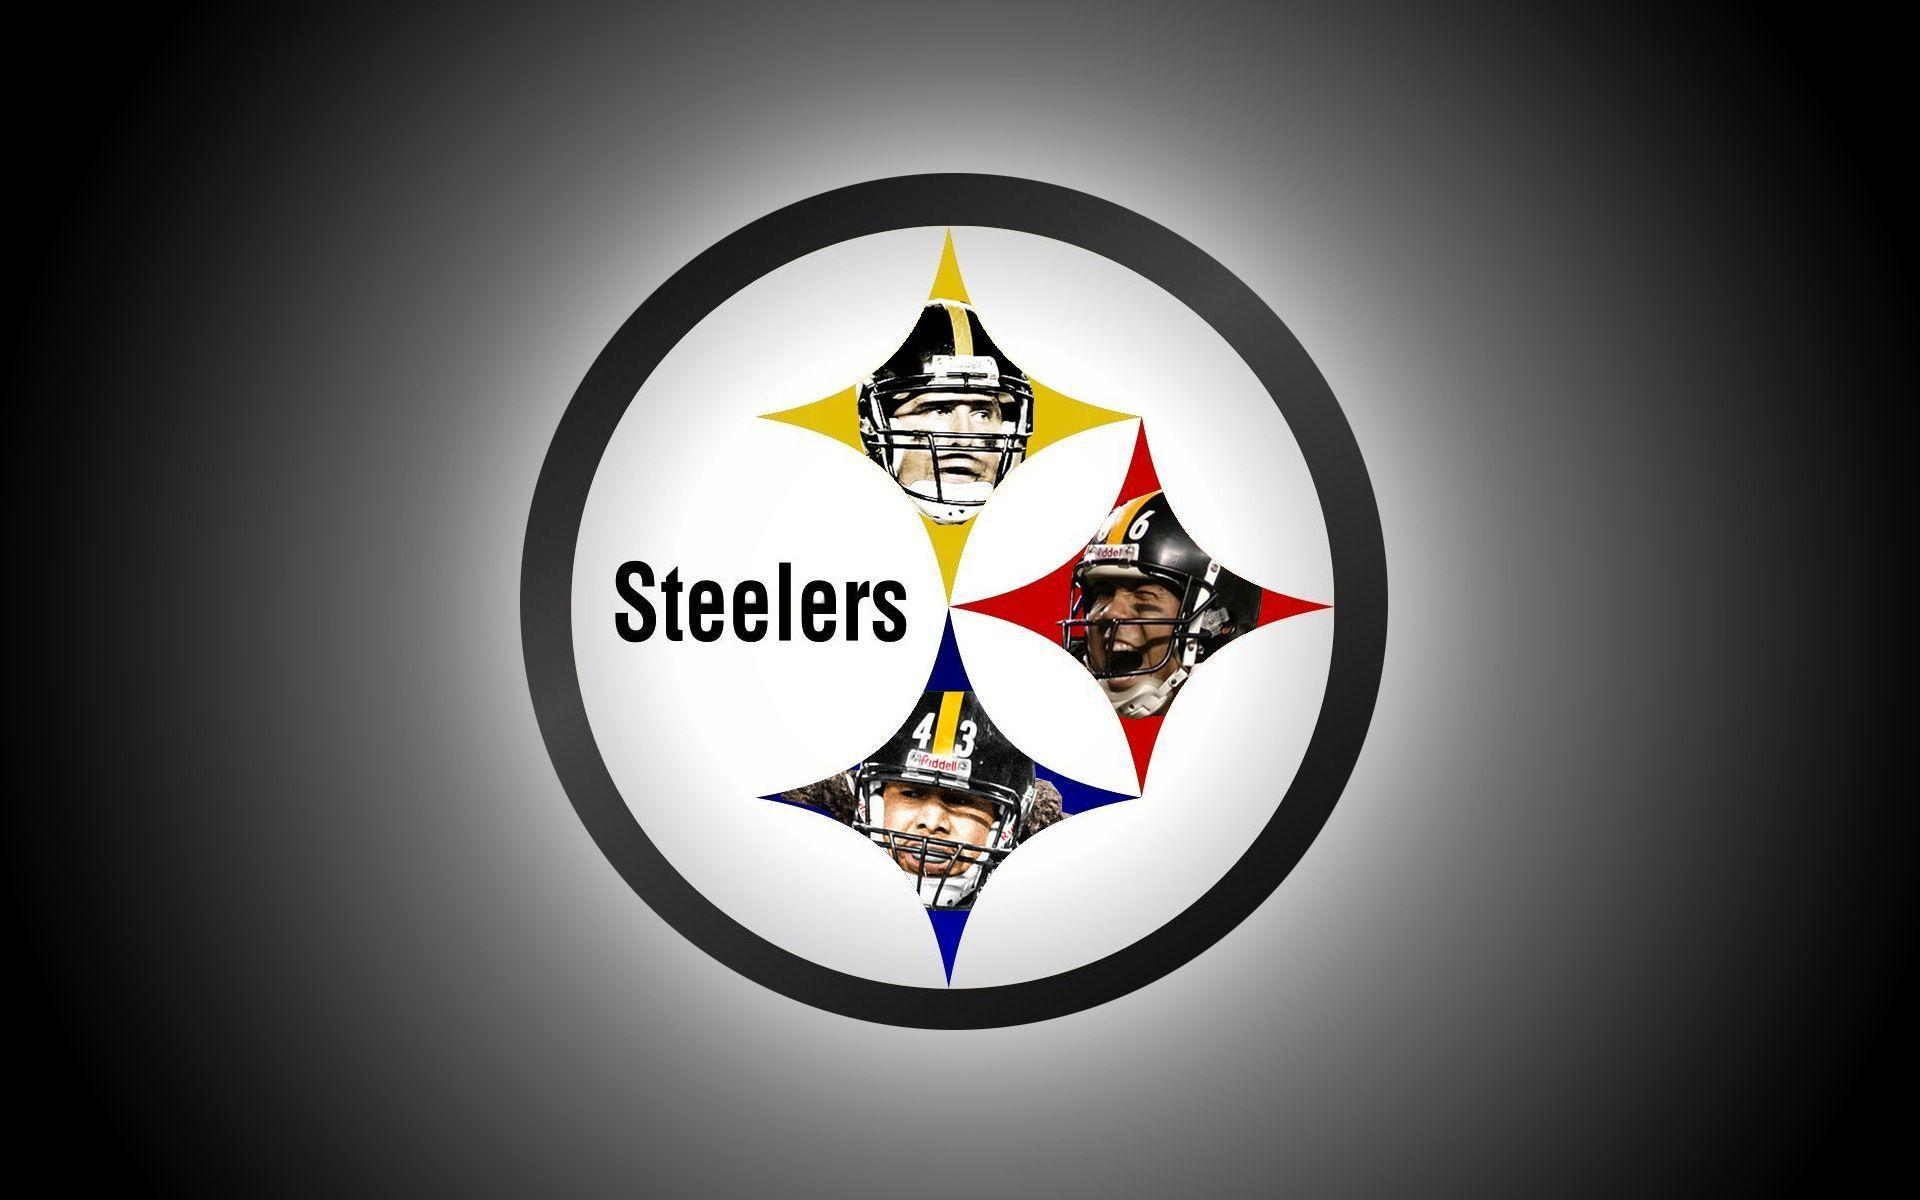 Steelers HD Wallpapers